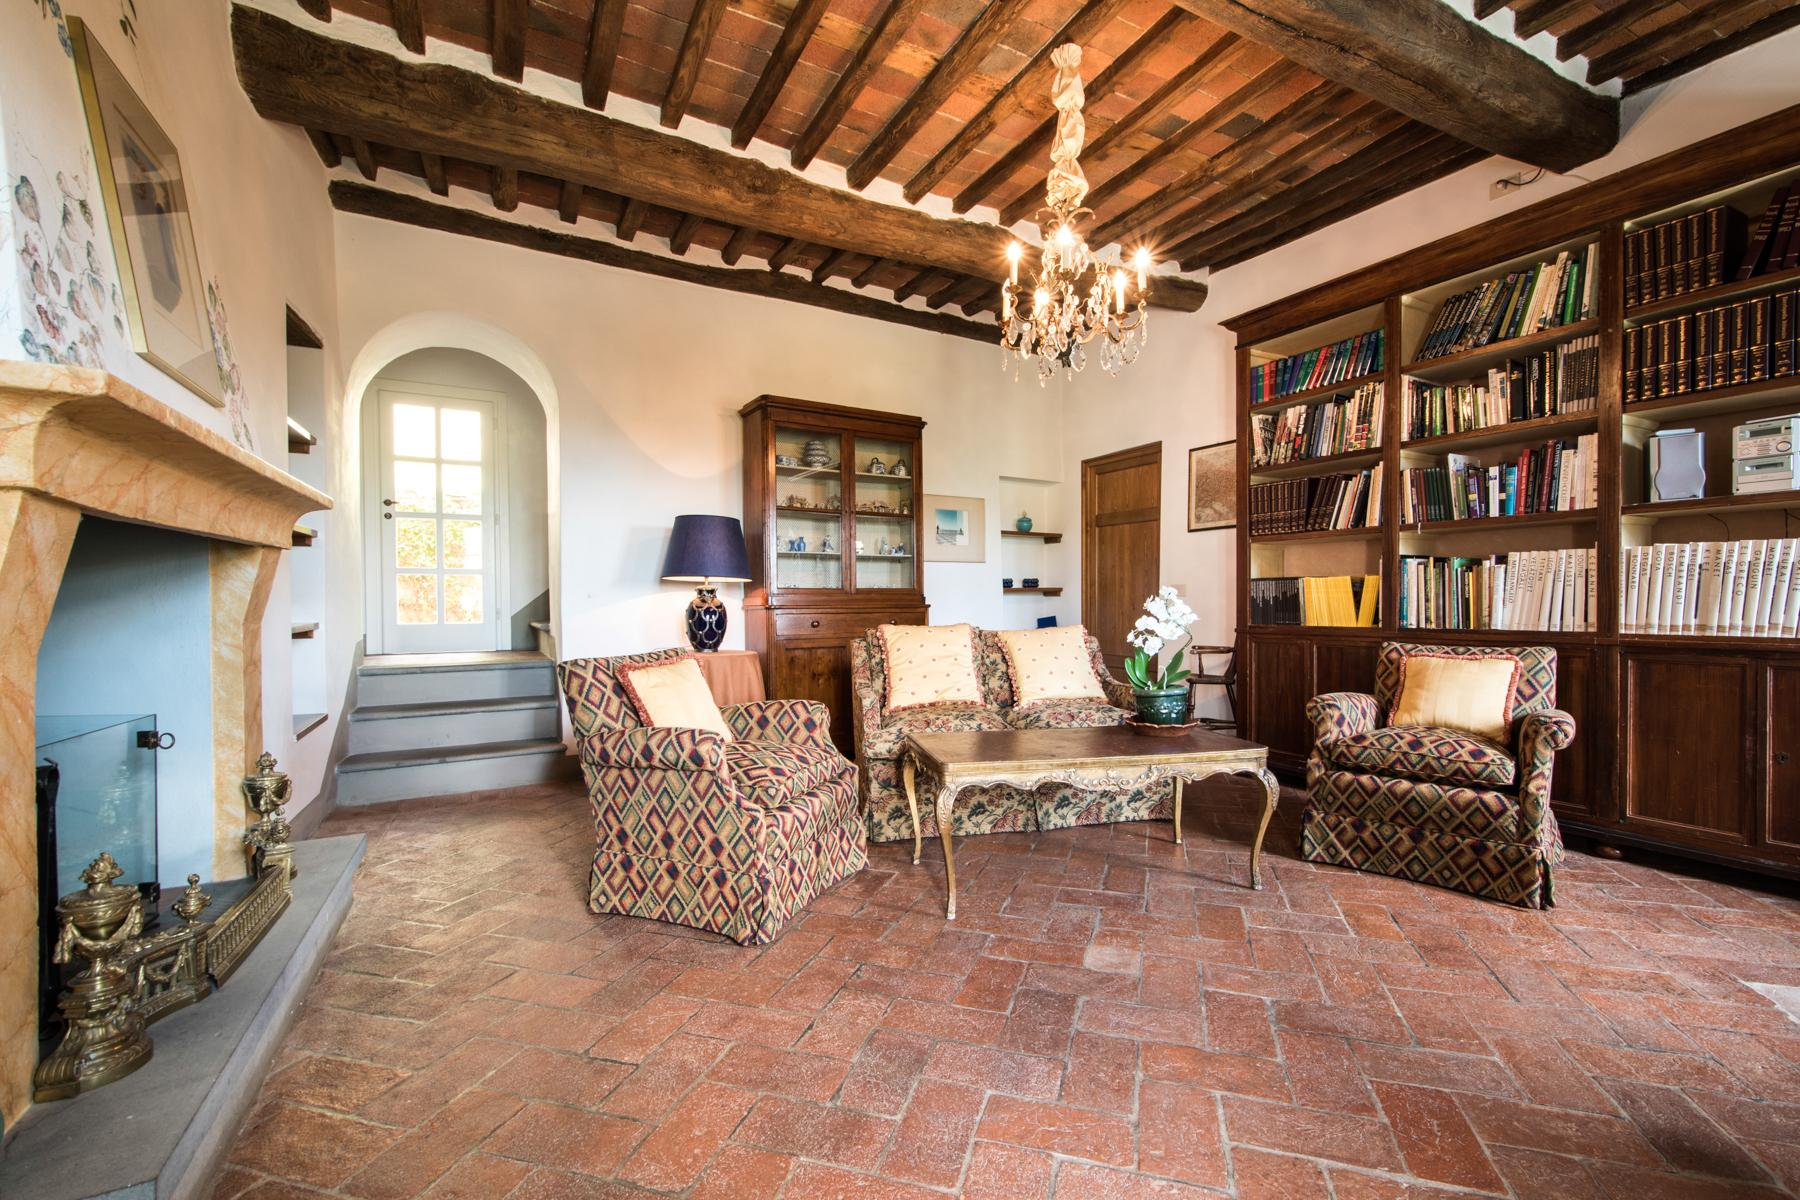 Marvelous villa in the countryside of Lucca - 20